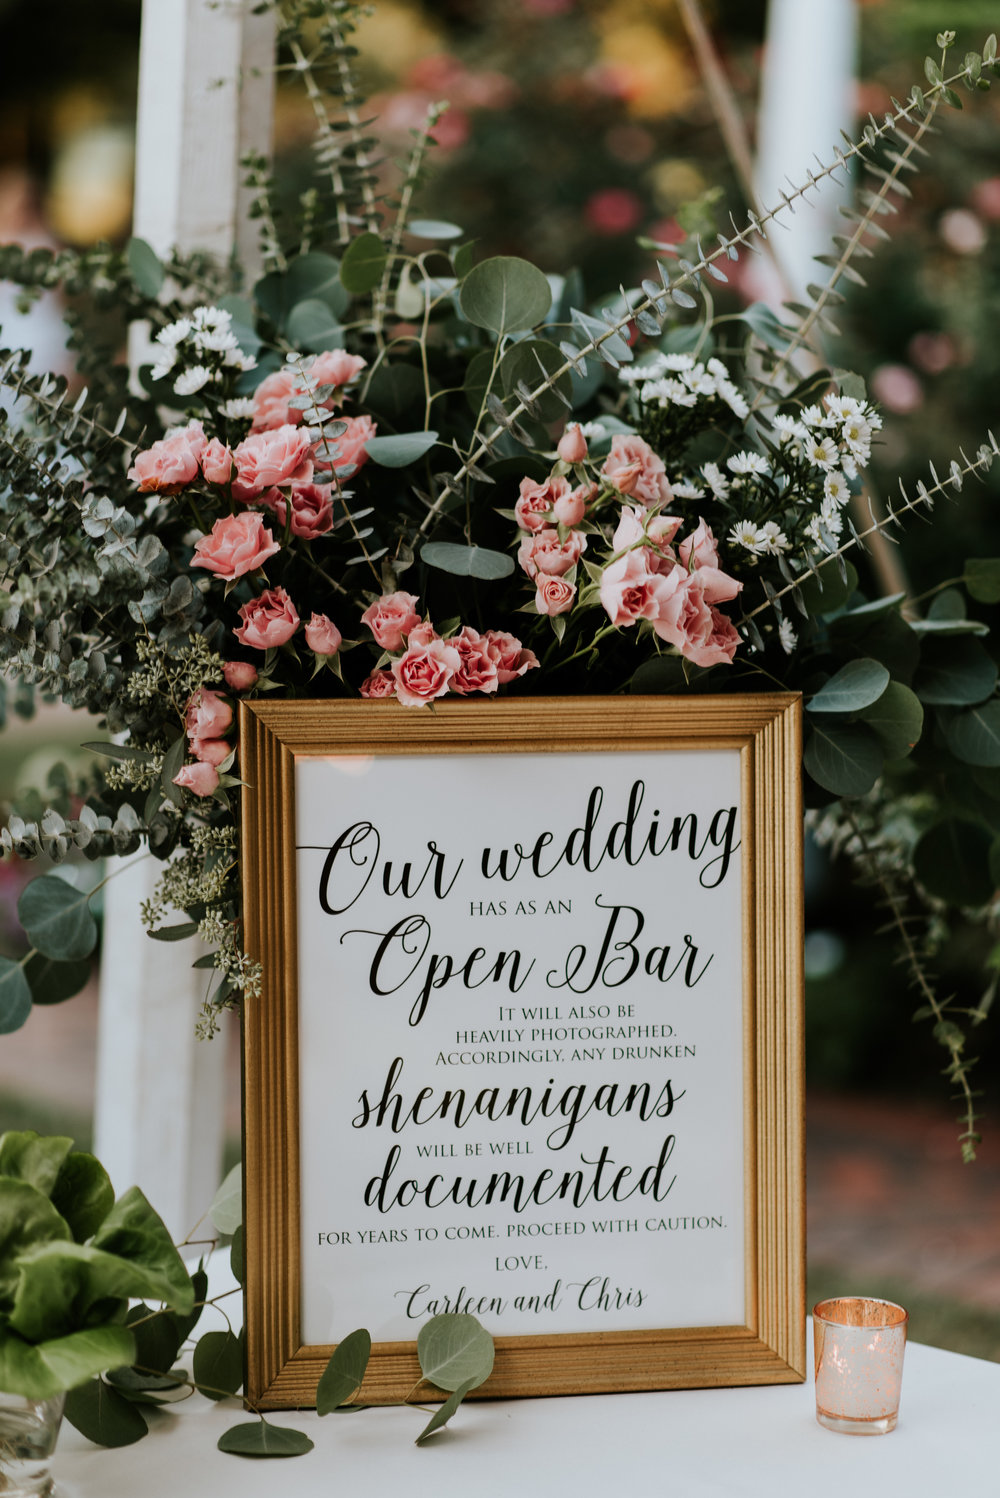 Rustic Oyster Themed Eastern Shore Maryland Outdoor Wedding by East Made Event Company Wedding Planner and Bekah Kay Creative1000.jpg